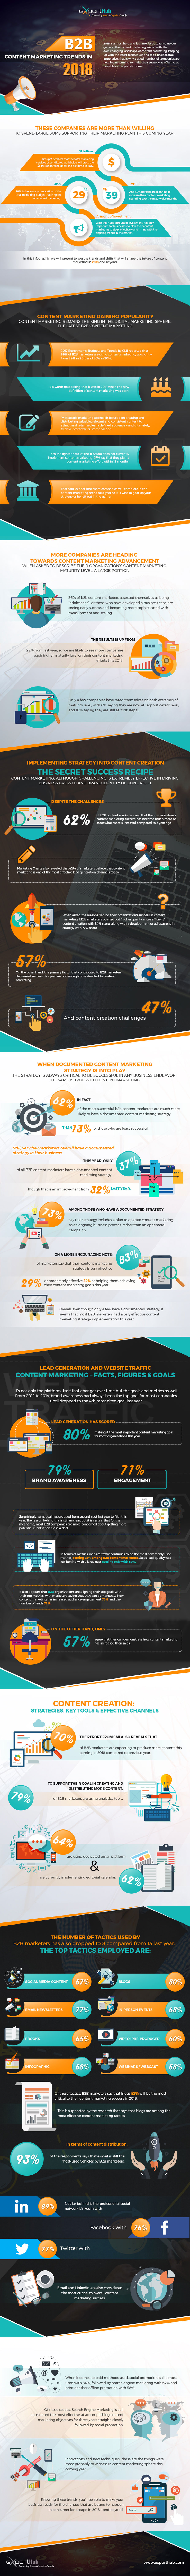 B2B-Content-Marketing-Trends-in-2018.jpg